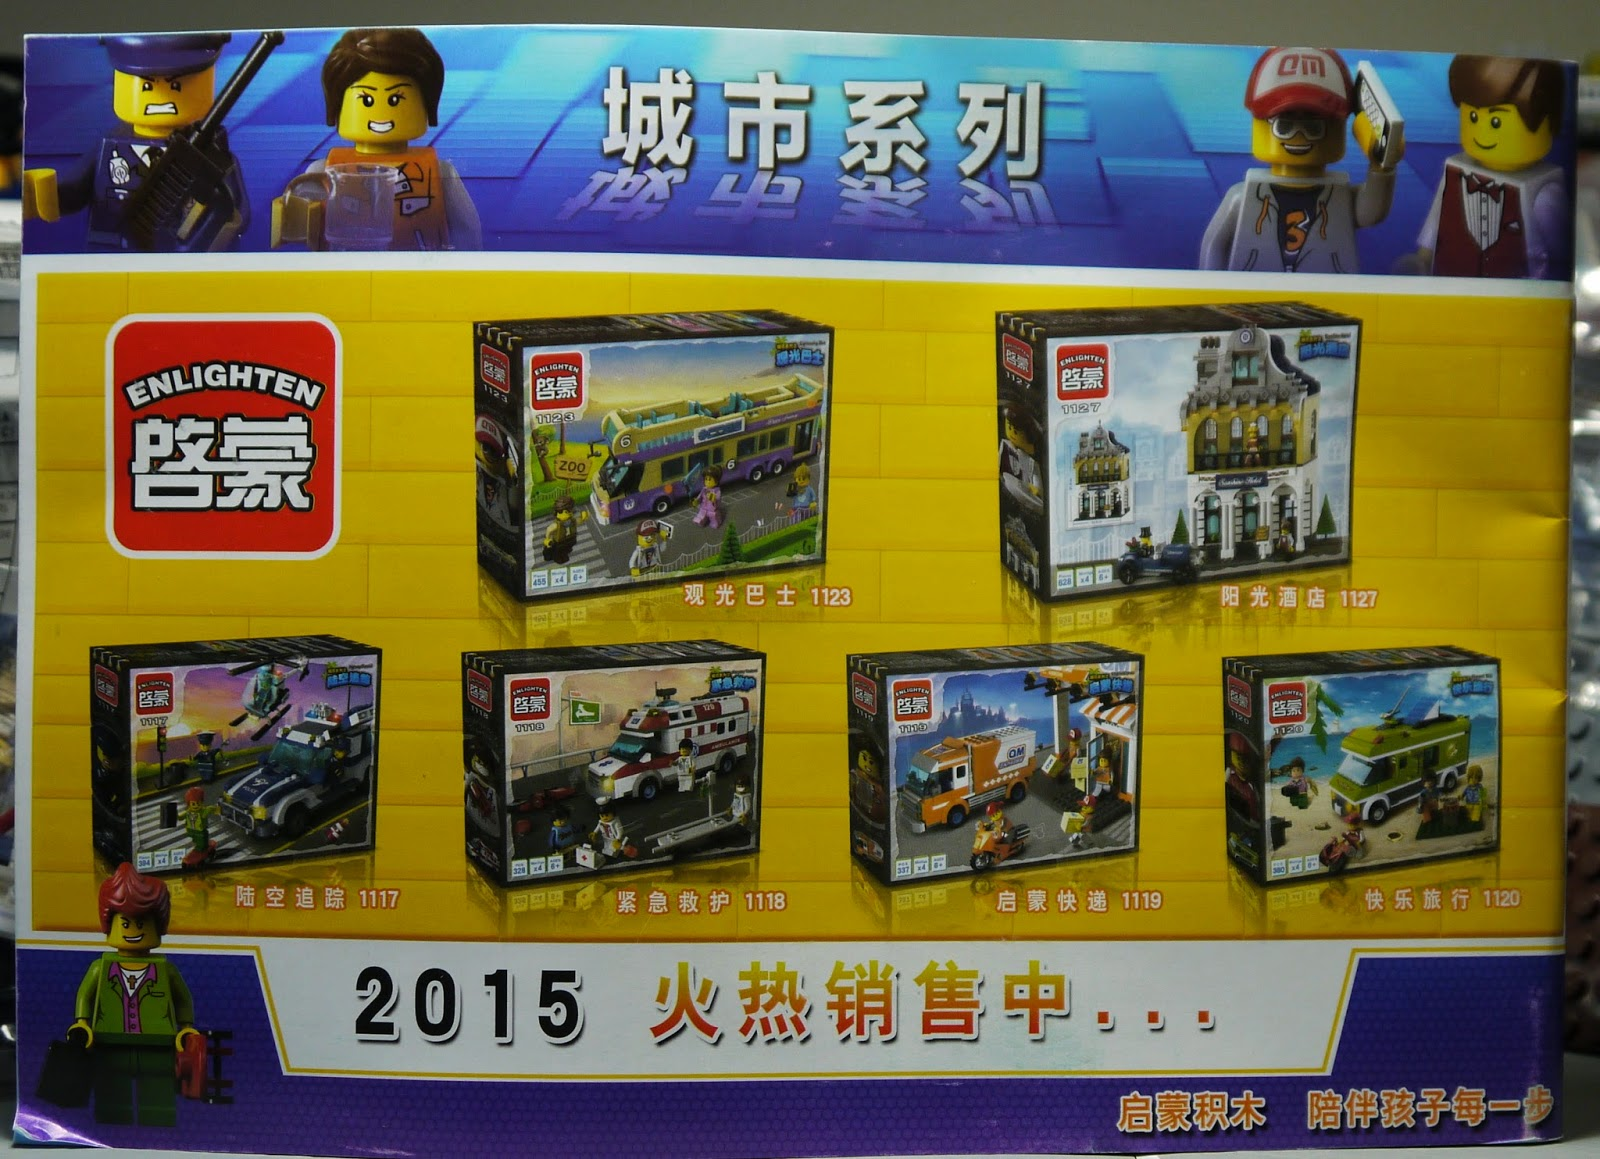 heres the back page of the instruction manual as you can see the hotel is the only building in the new 2015 line up the rest of the new sets include a